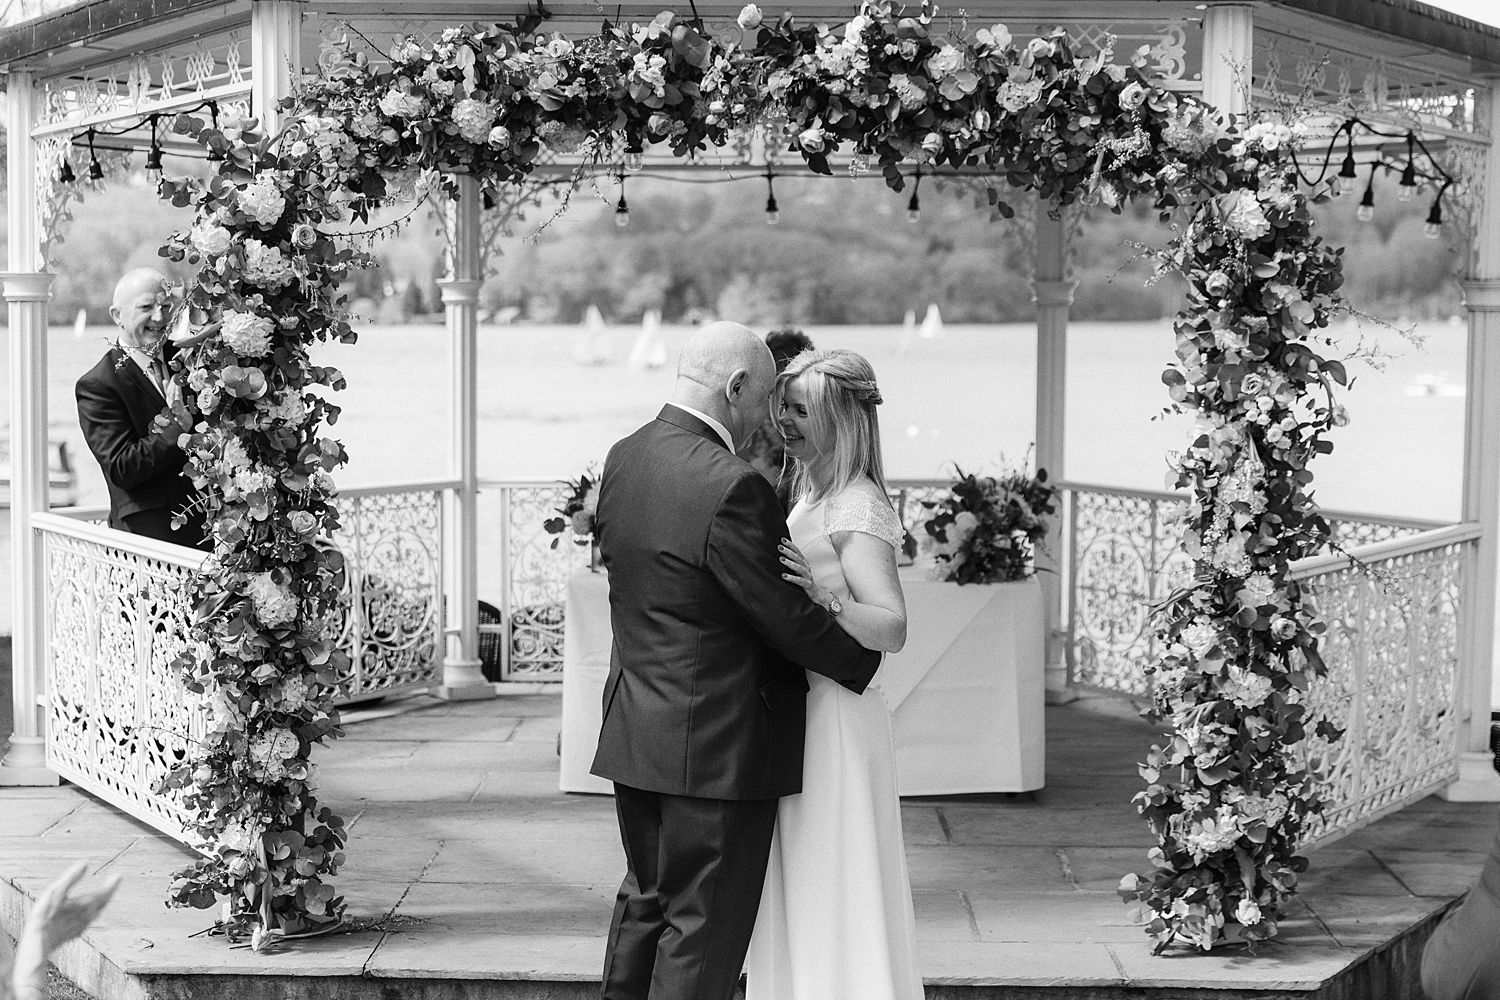 Bride and groom embrace at outdoor wedding ceremony at Storrs Hall, Bowness on Windermere